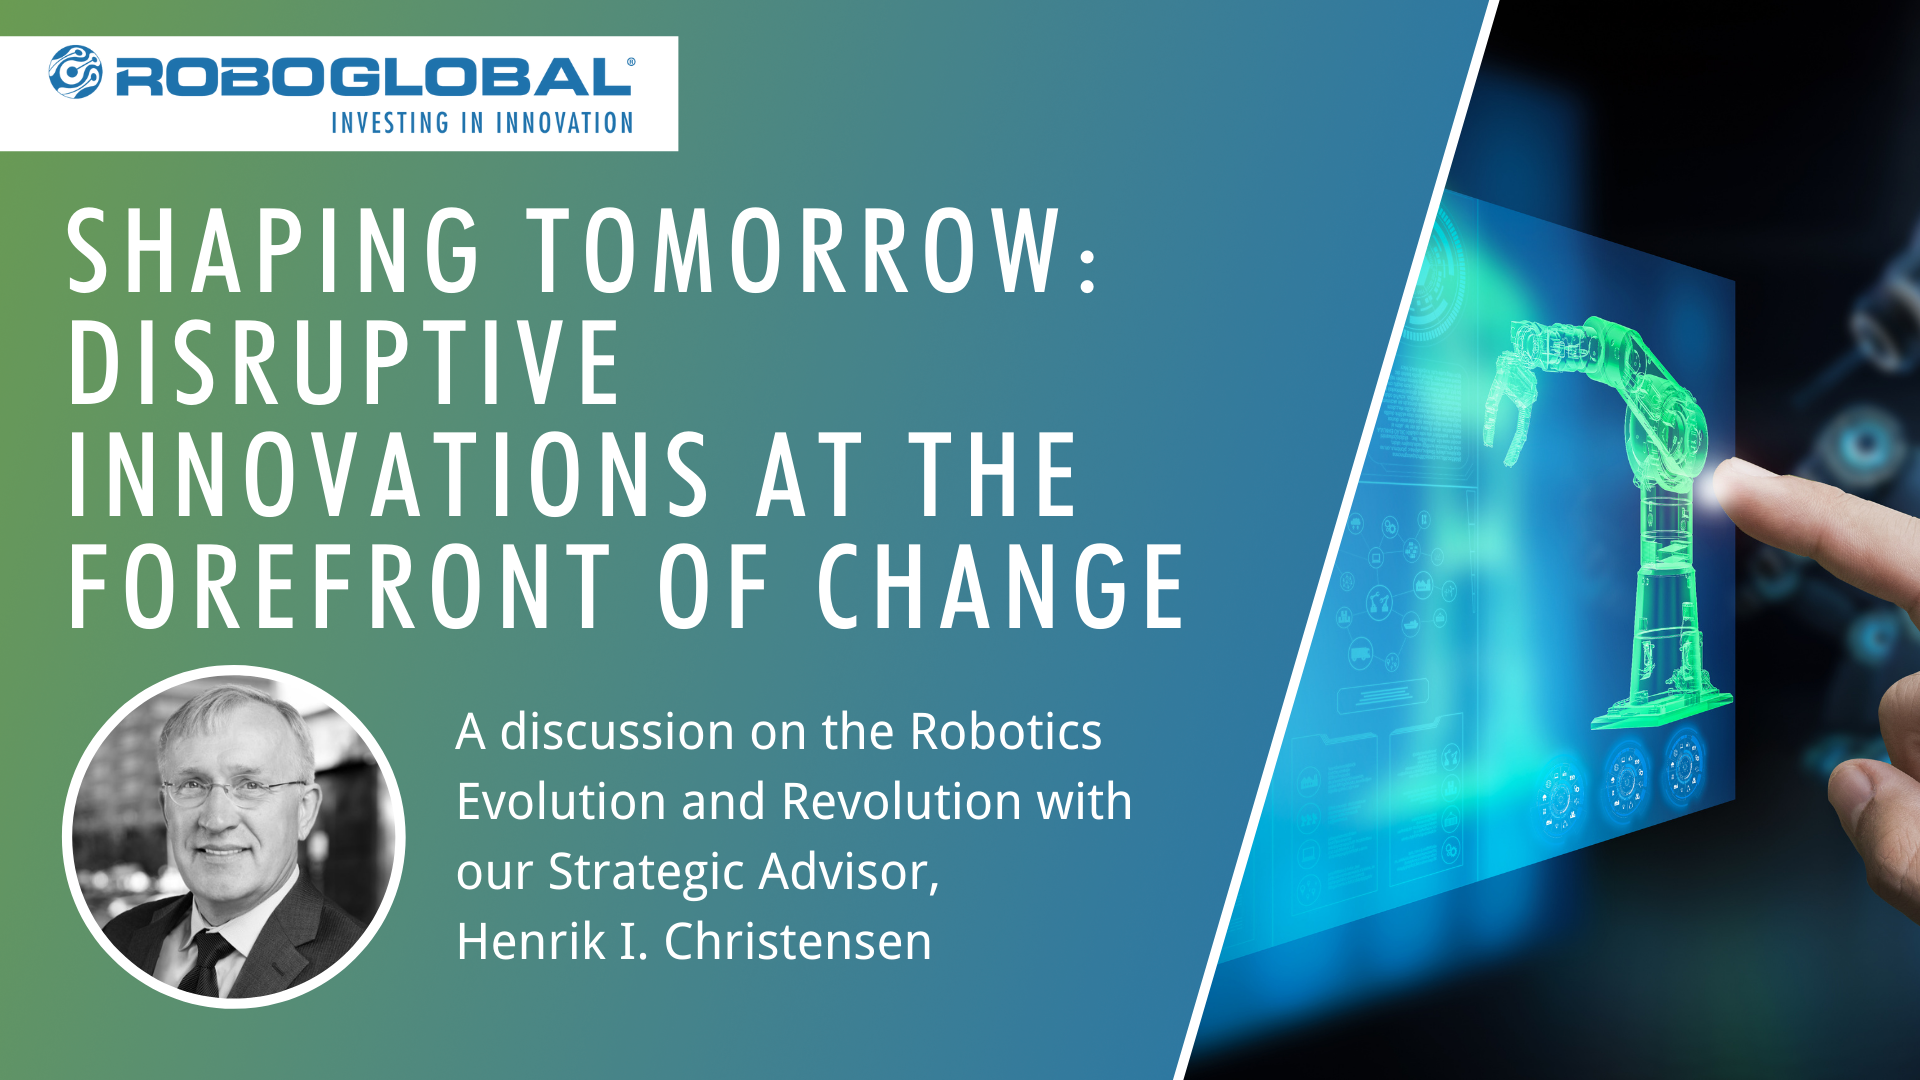 Shaping Tomorrow: Disruptive Innovations at the Forefront of Change